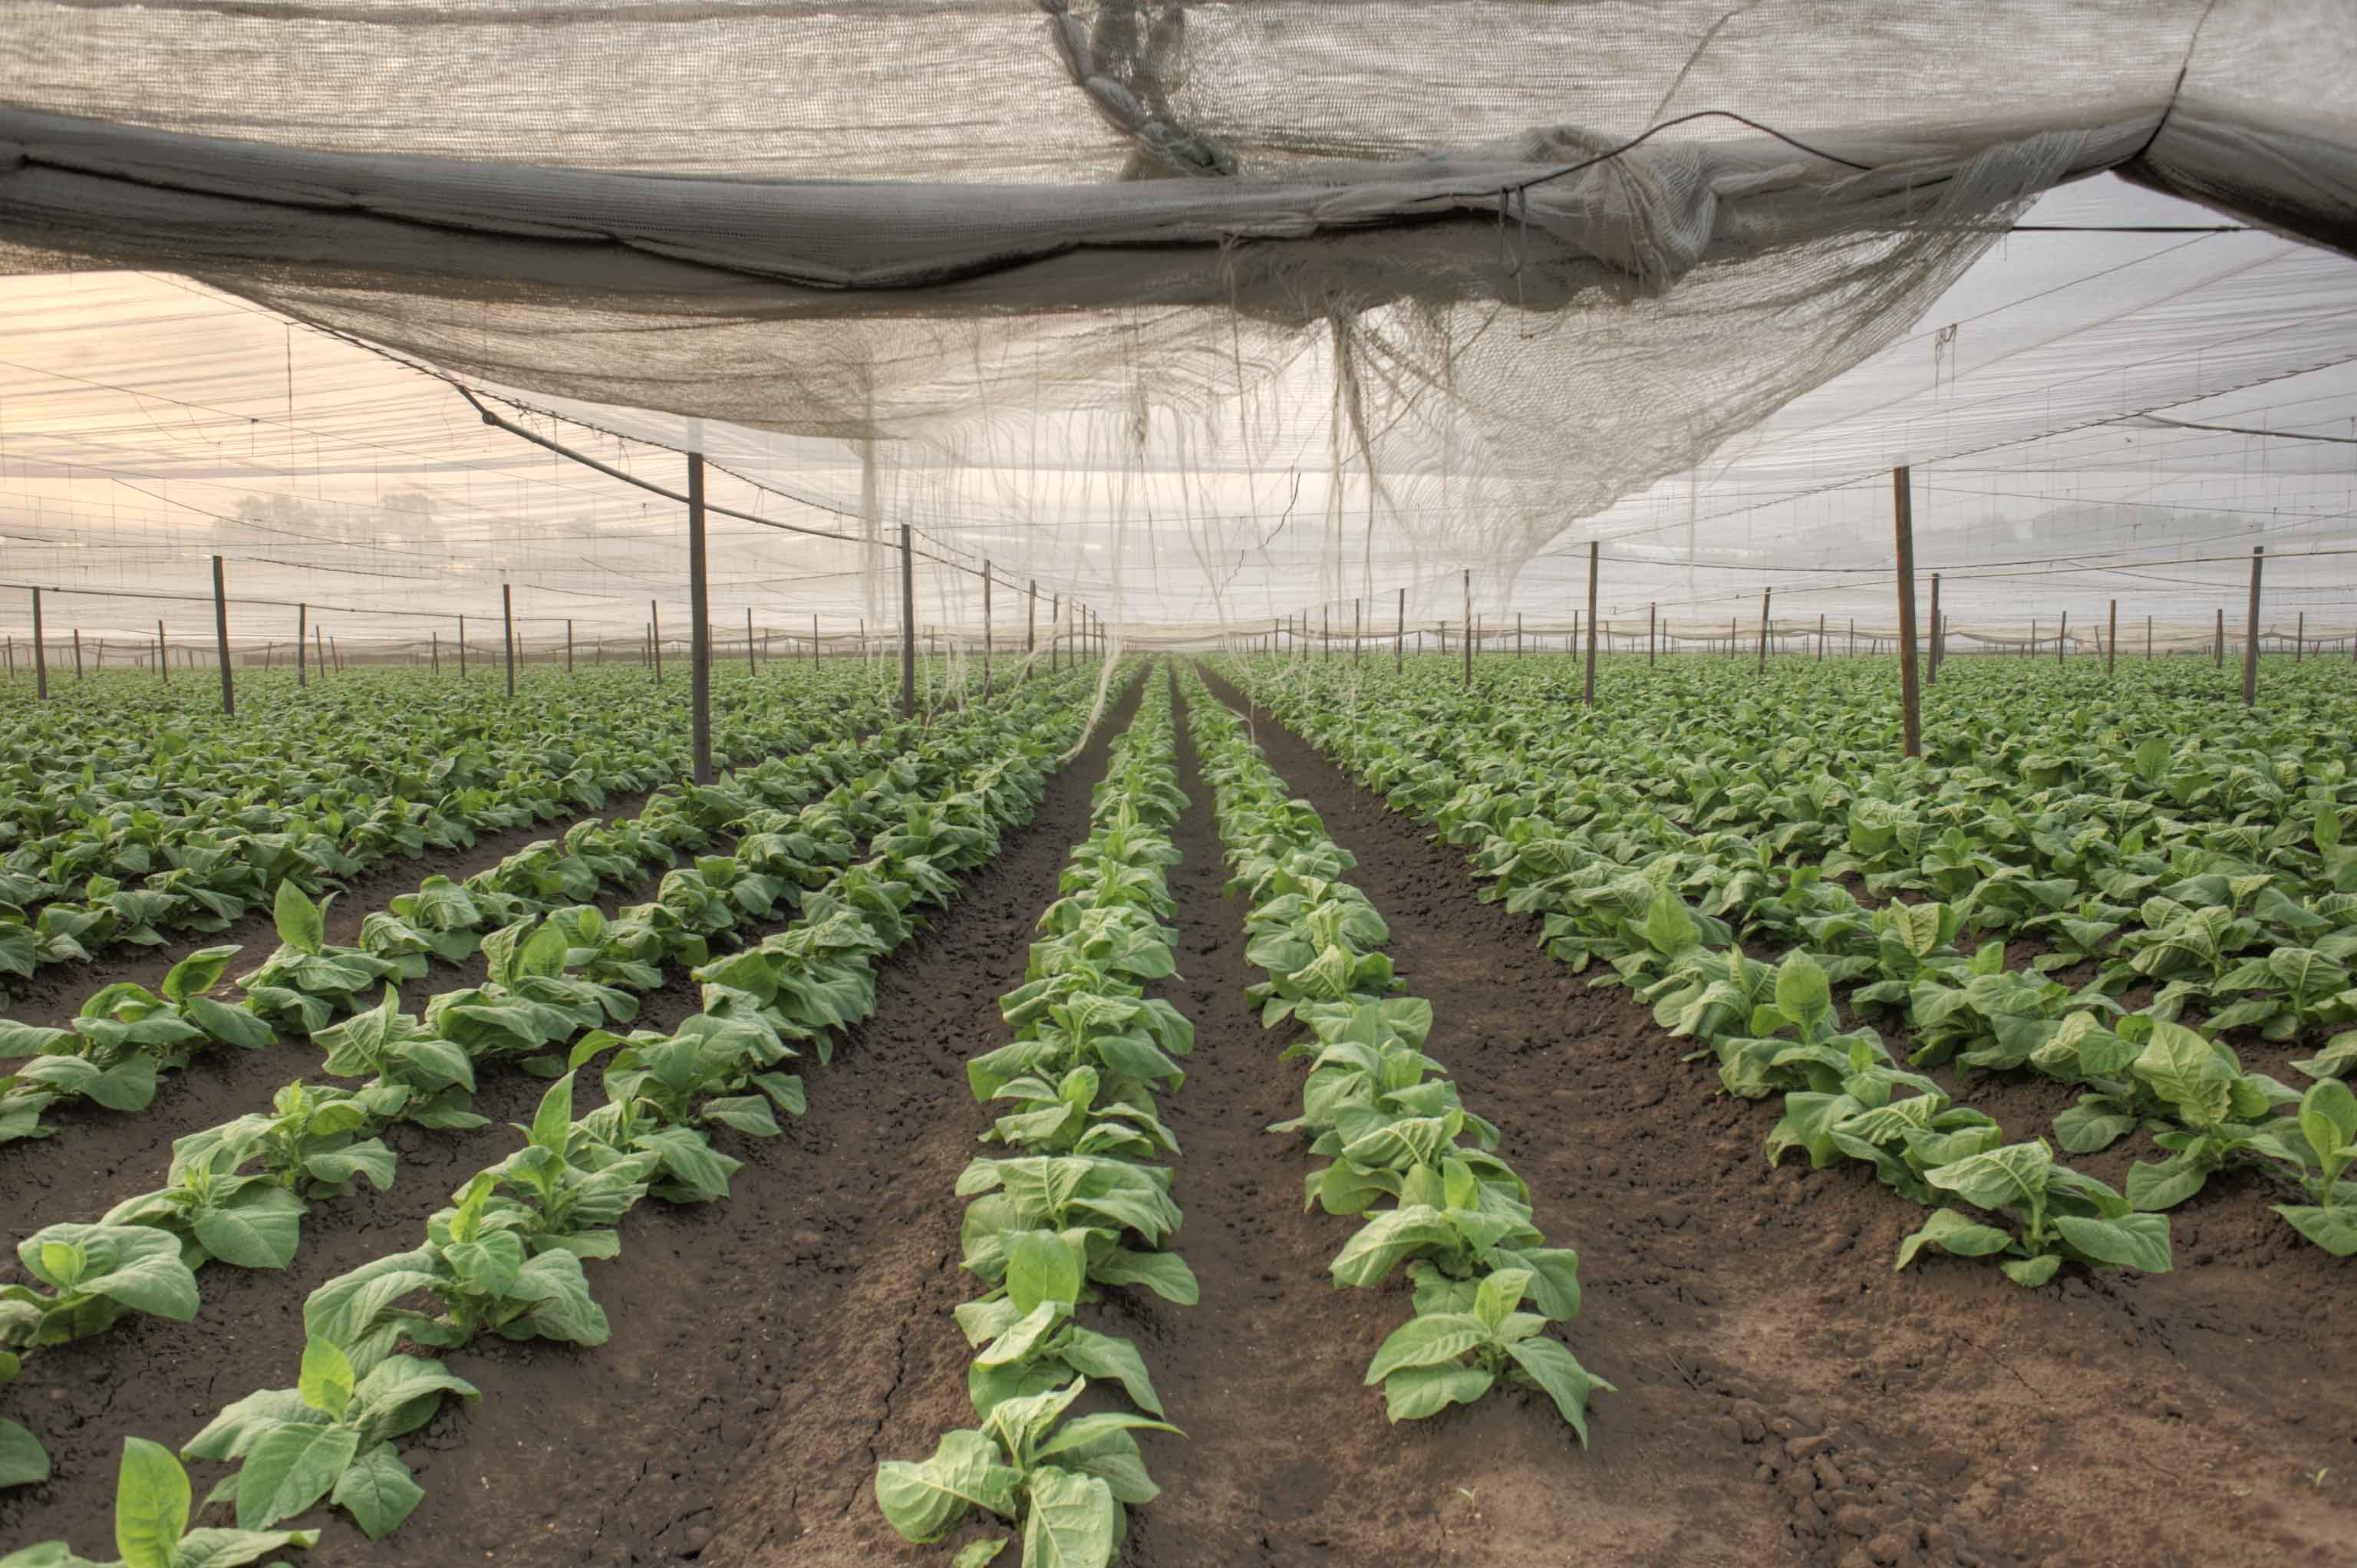 ROWS OF TOBACCO